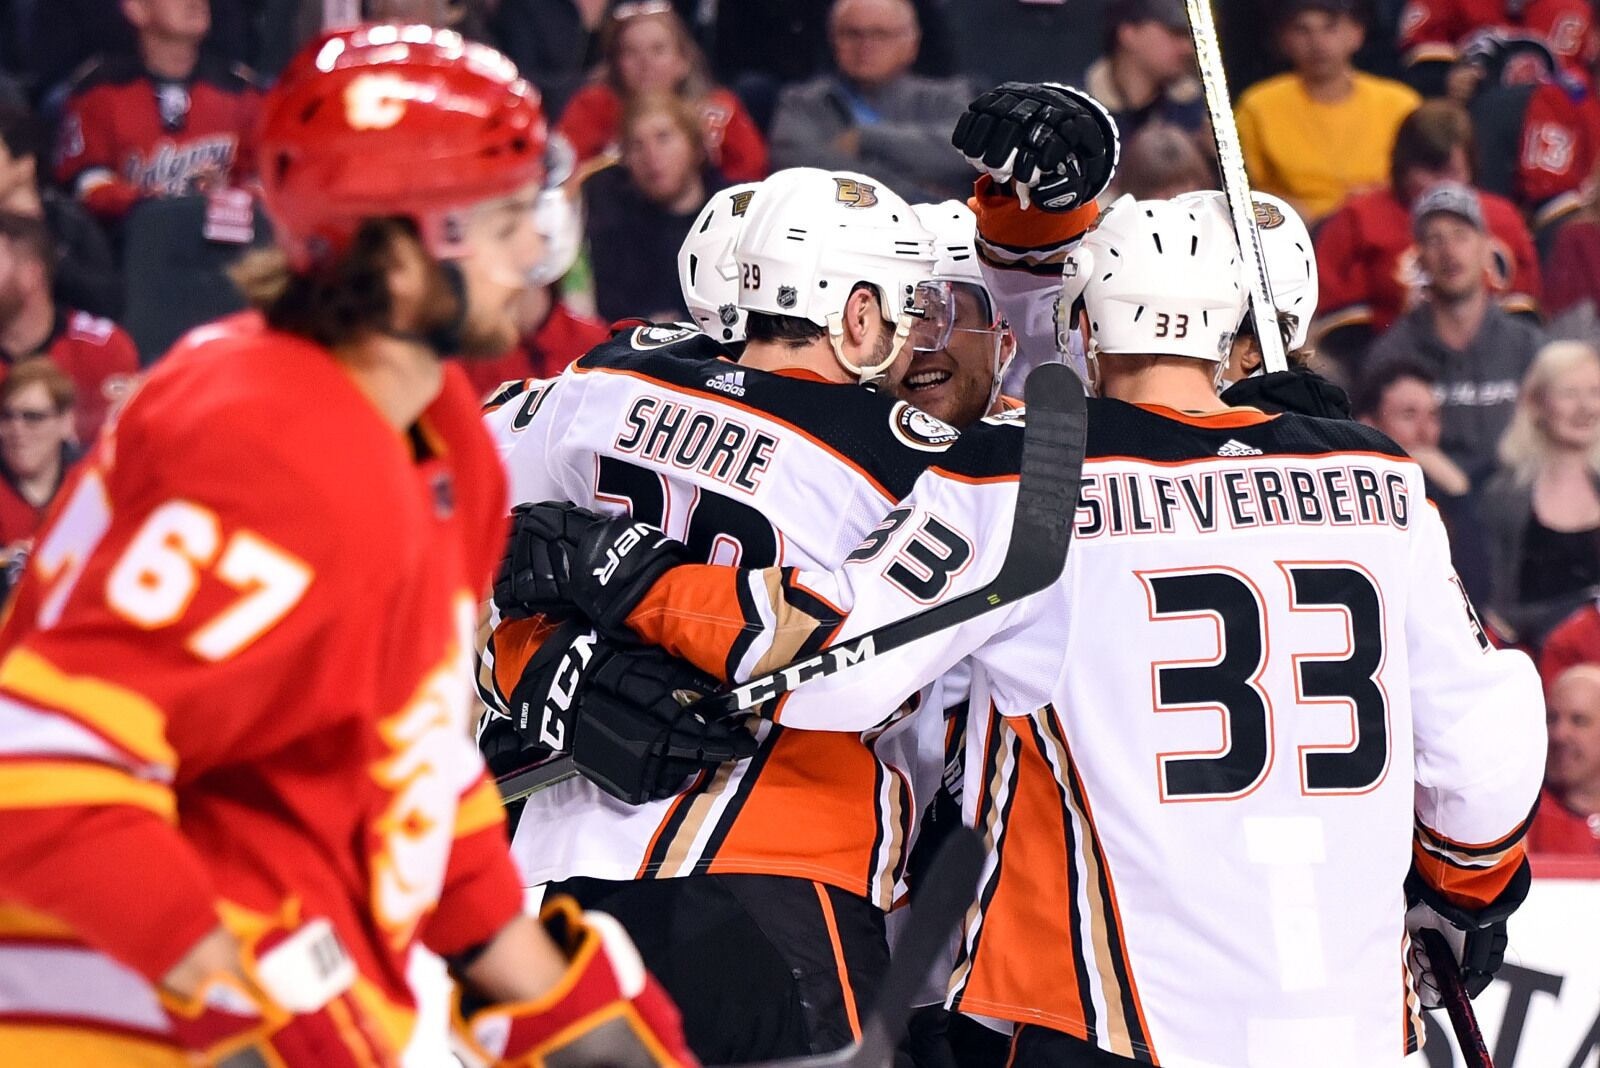 Anaheim Ducks: Three Keys to Smothering the Flames